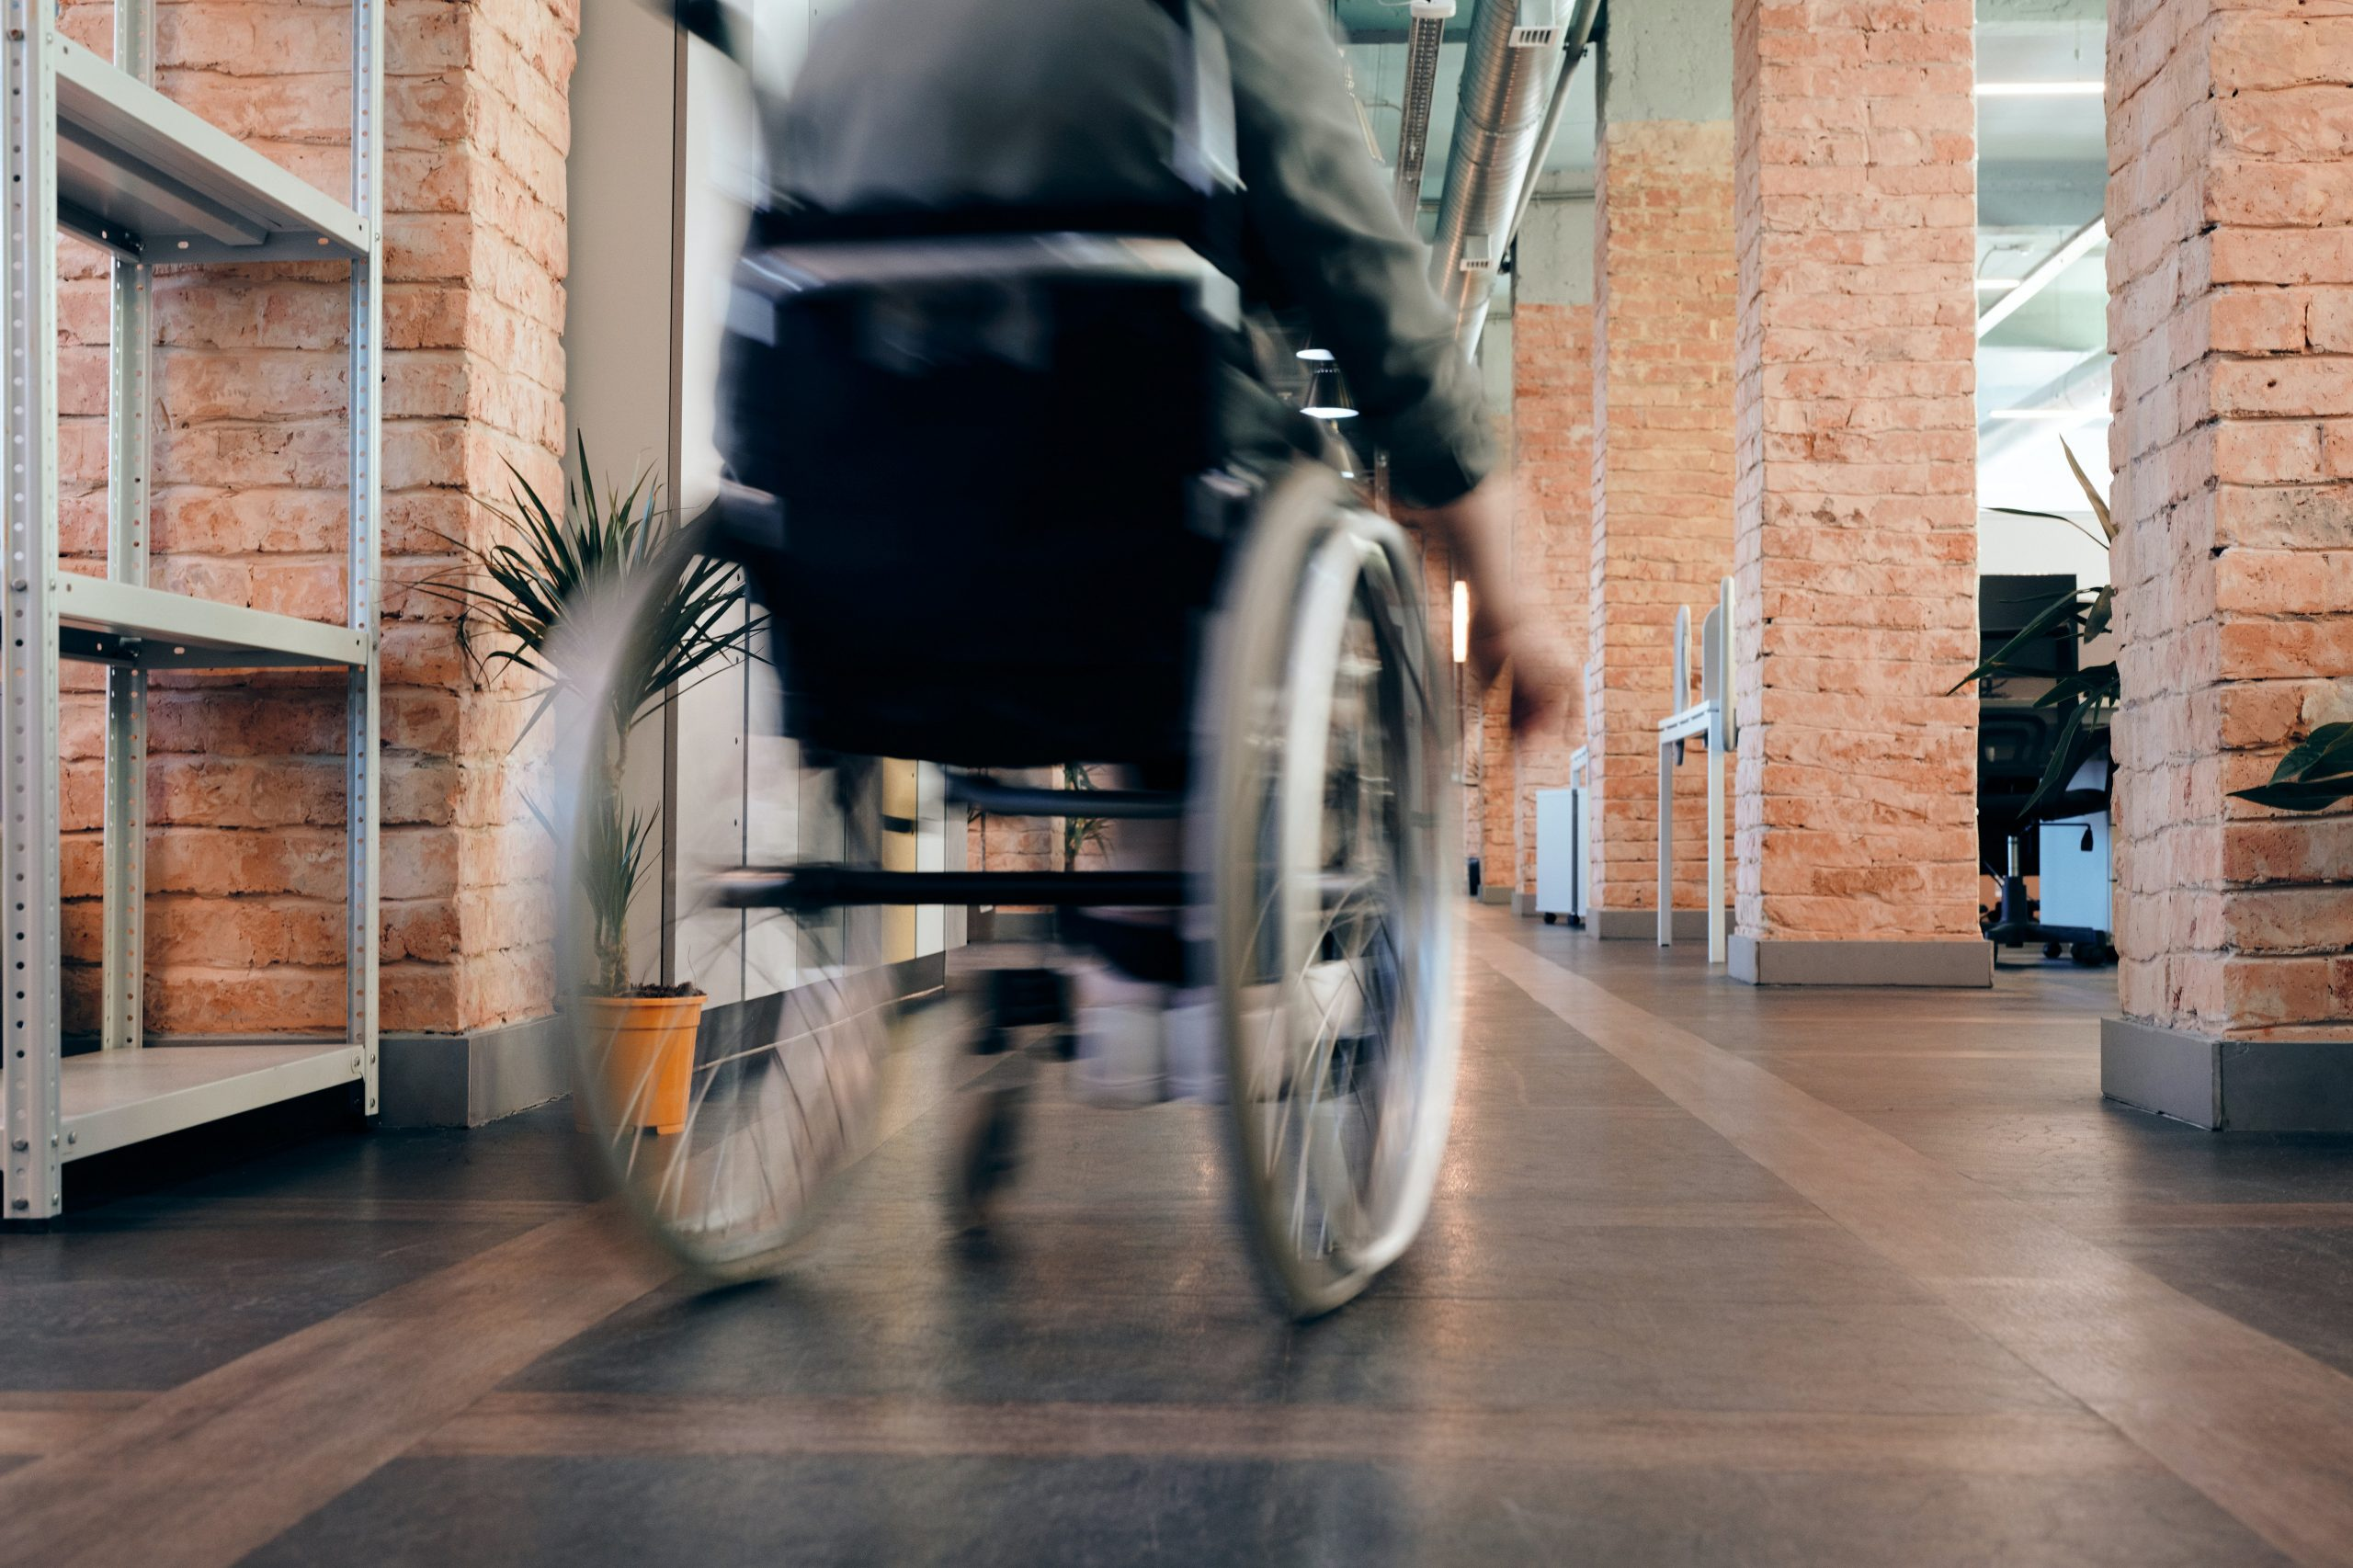 A wheelchair user moves away from the camera in a light blur. They are inside a building with brick walls.